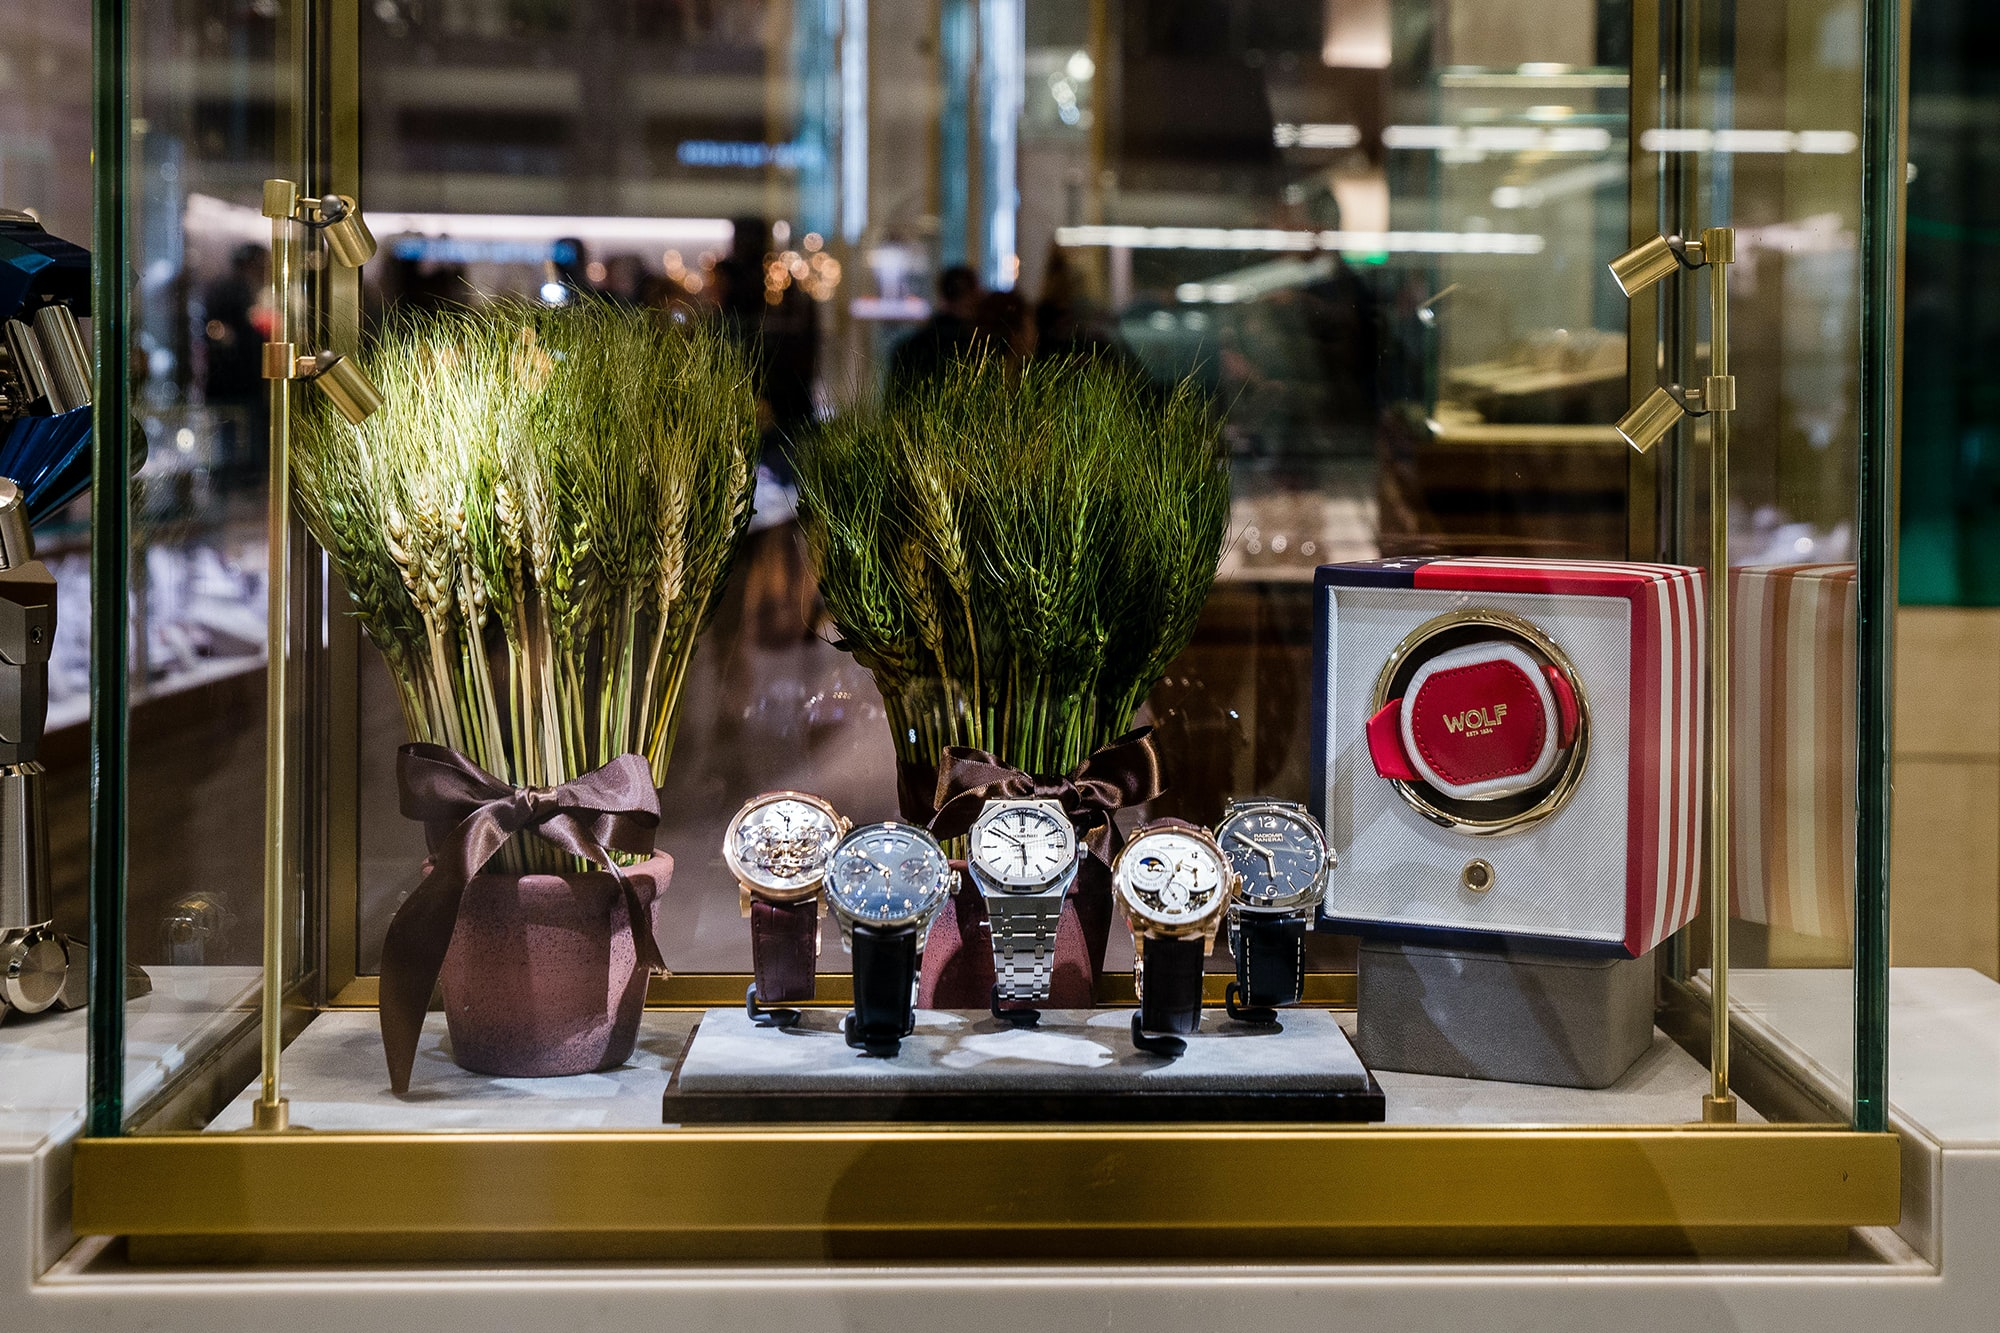 Photo Report: HODINKEE Celebrates London Jewelers' New Store In New York City's Oculus Photo Report: HODINKEE Celebrates London Jewelers' New Store In New York City's Oculus 20161109 LondonJewelersxHodinkee 034